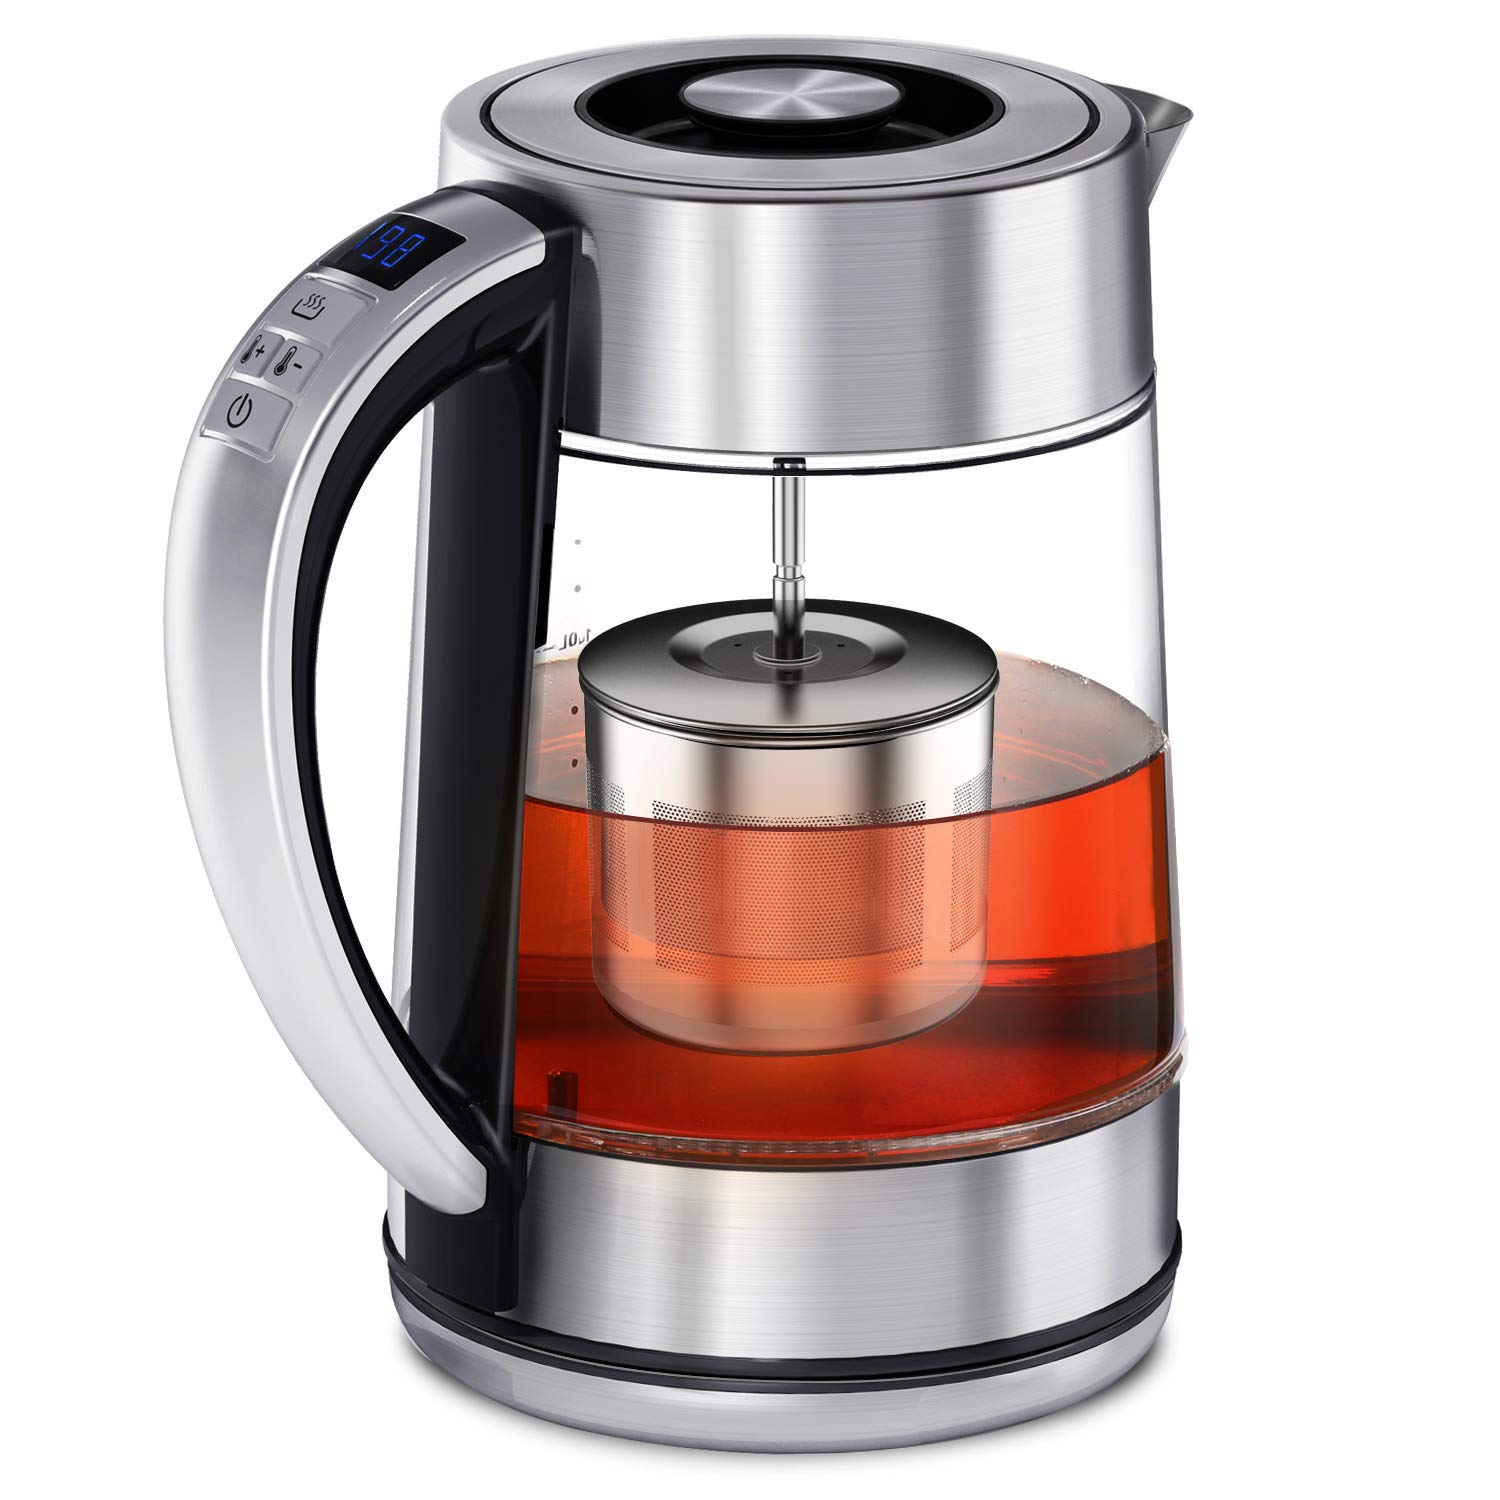 FEBOTE Electric Tea Kettle, 2 in 1 Glass Kettle Teapot with Infuser, 1500W-1.7L (BPA-Free) Water Heater Variable Temperature Control, Stainless Steel&Body Removable Lid for Tea, Coffee by FEBOTE